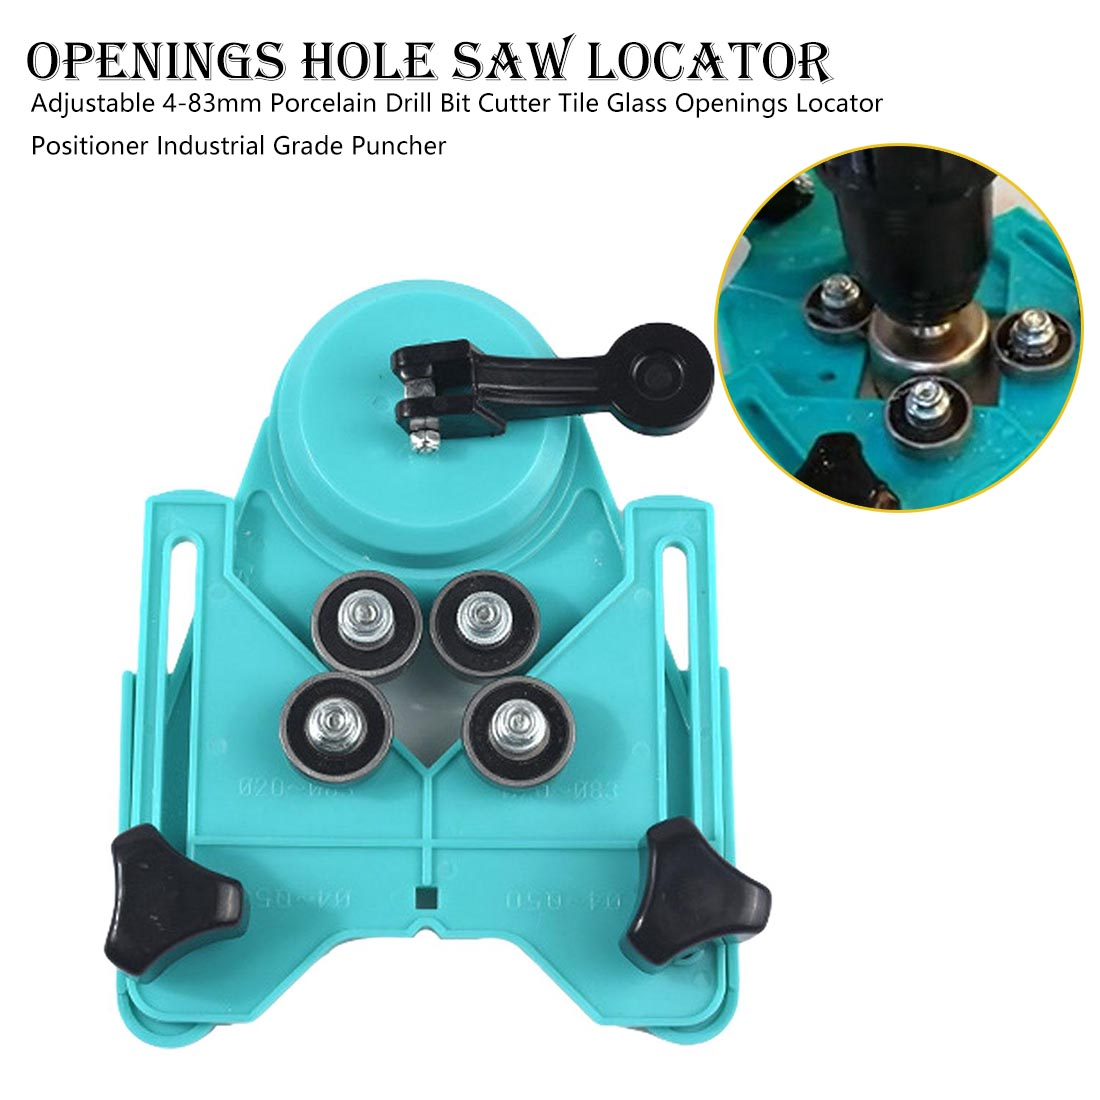 Adjustable 4-83mm Diamond Opening Drill Bit Tile Glass Hole Locator Saw Core Bit Guide Chuck Positioner Industrial Grade Puncher